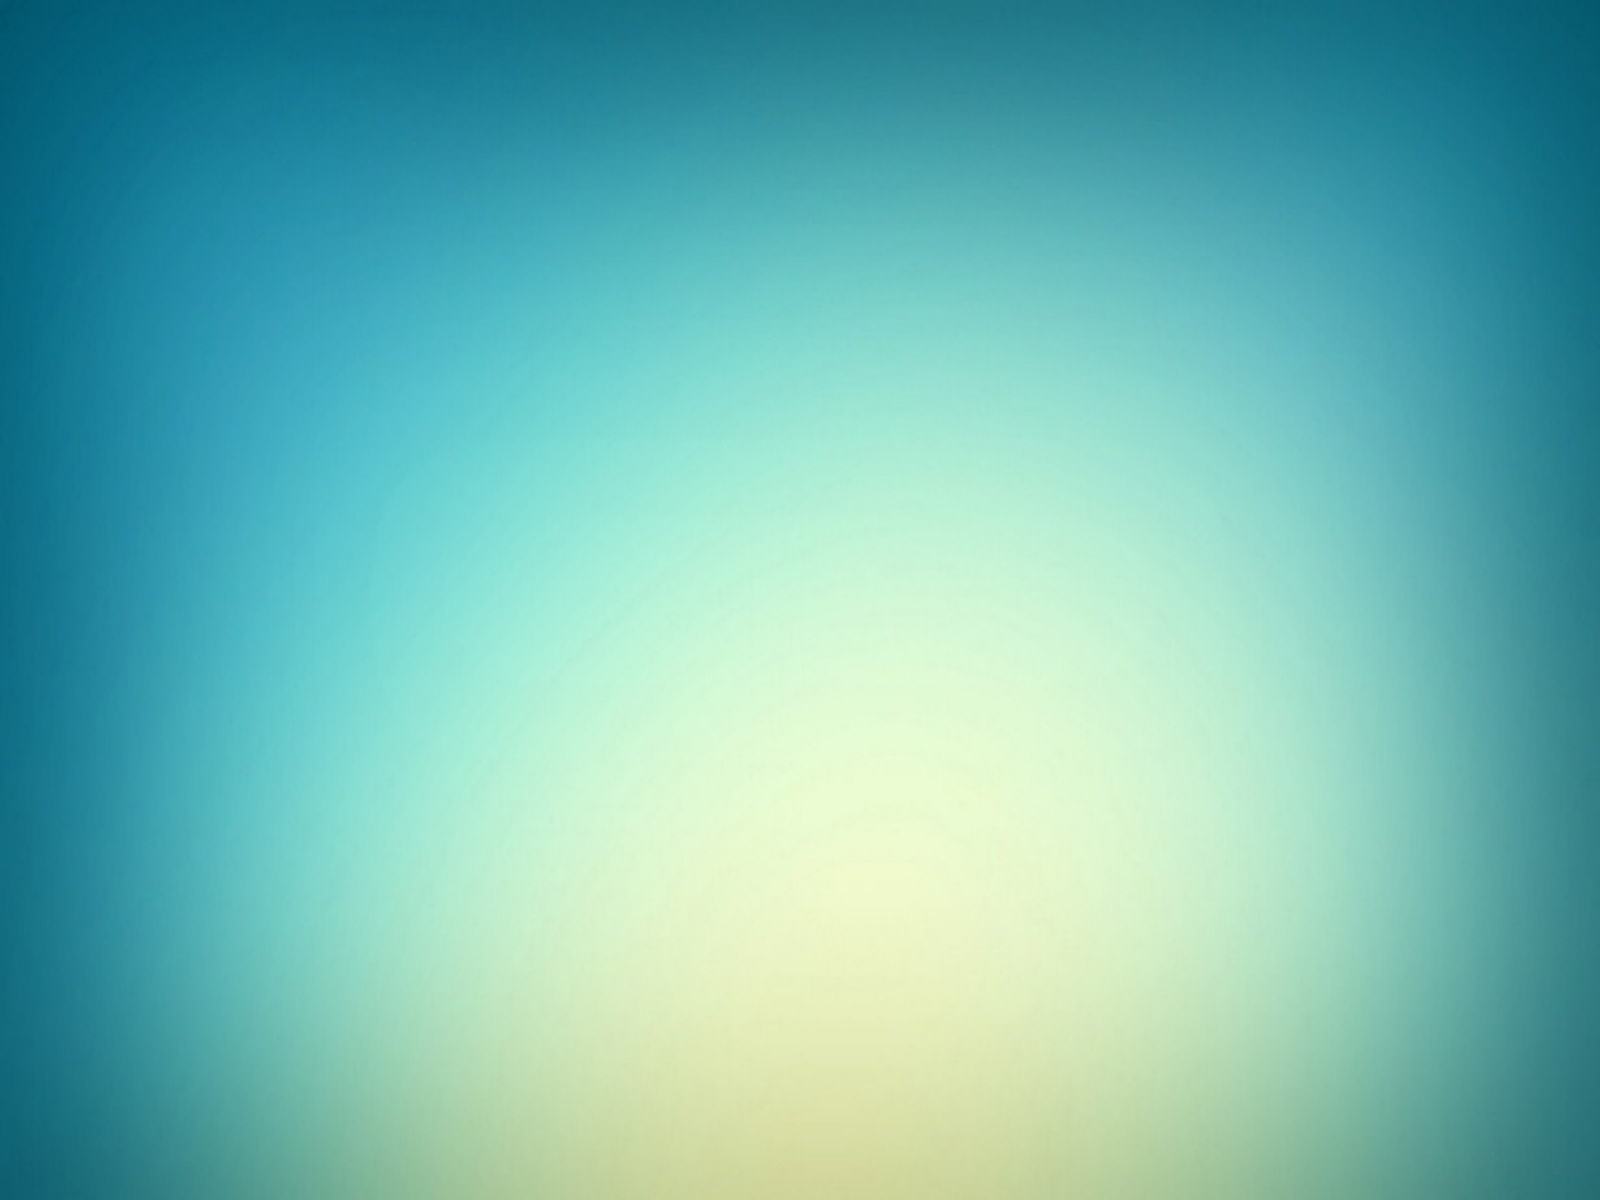 Simple Backgrounds 6809626 1600x1200